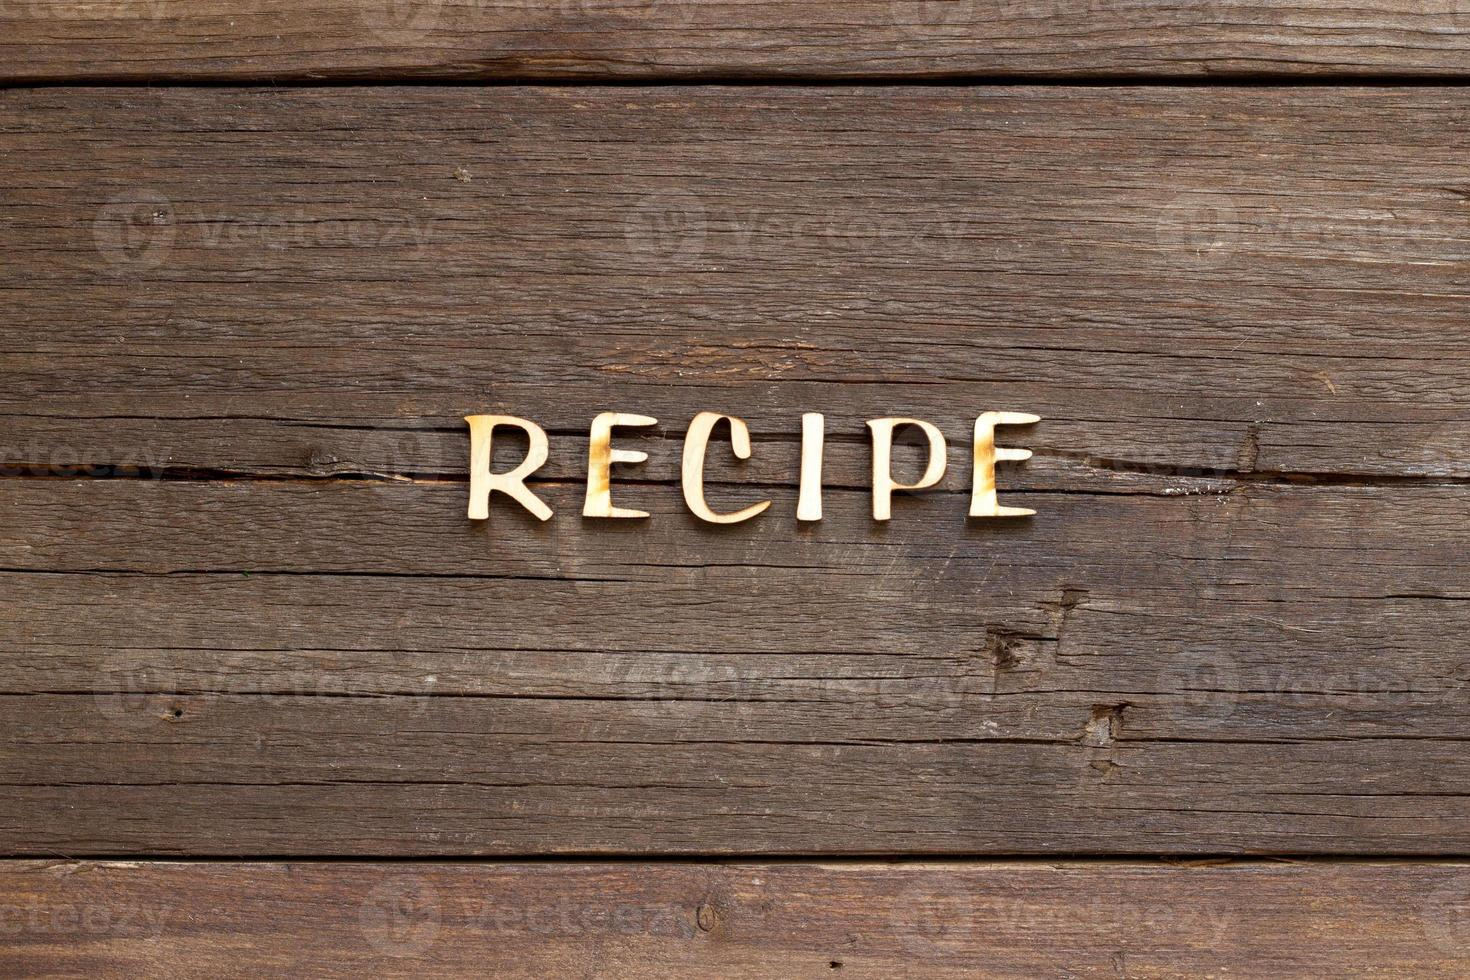 Recipes word photo